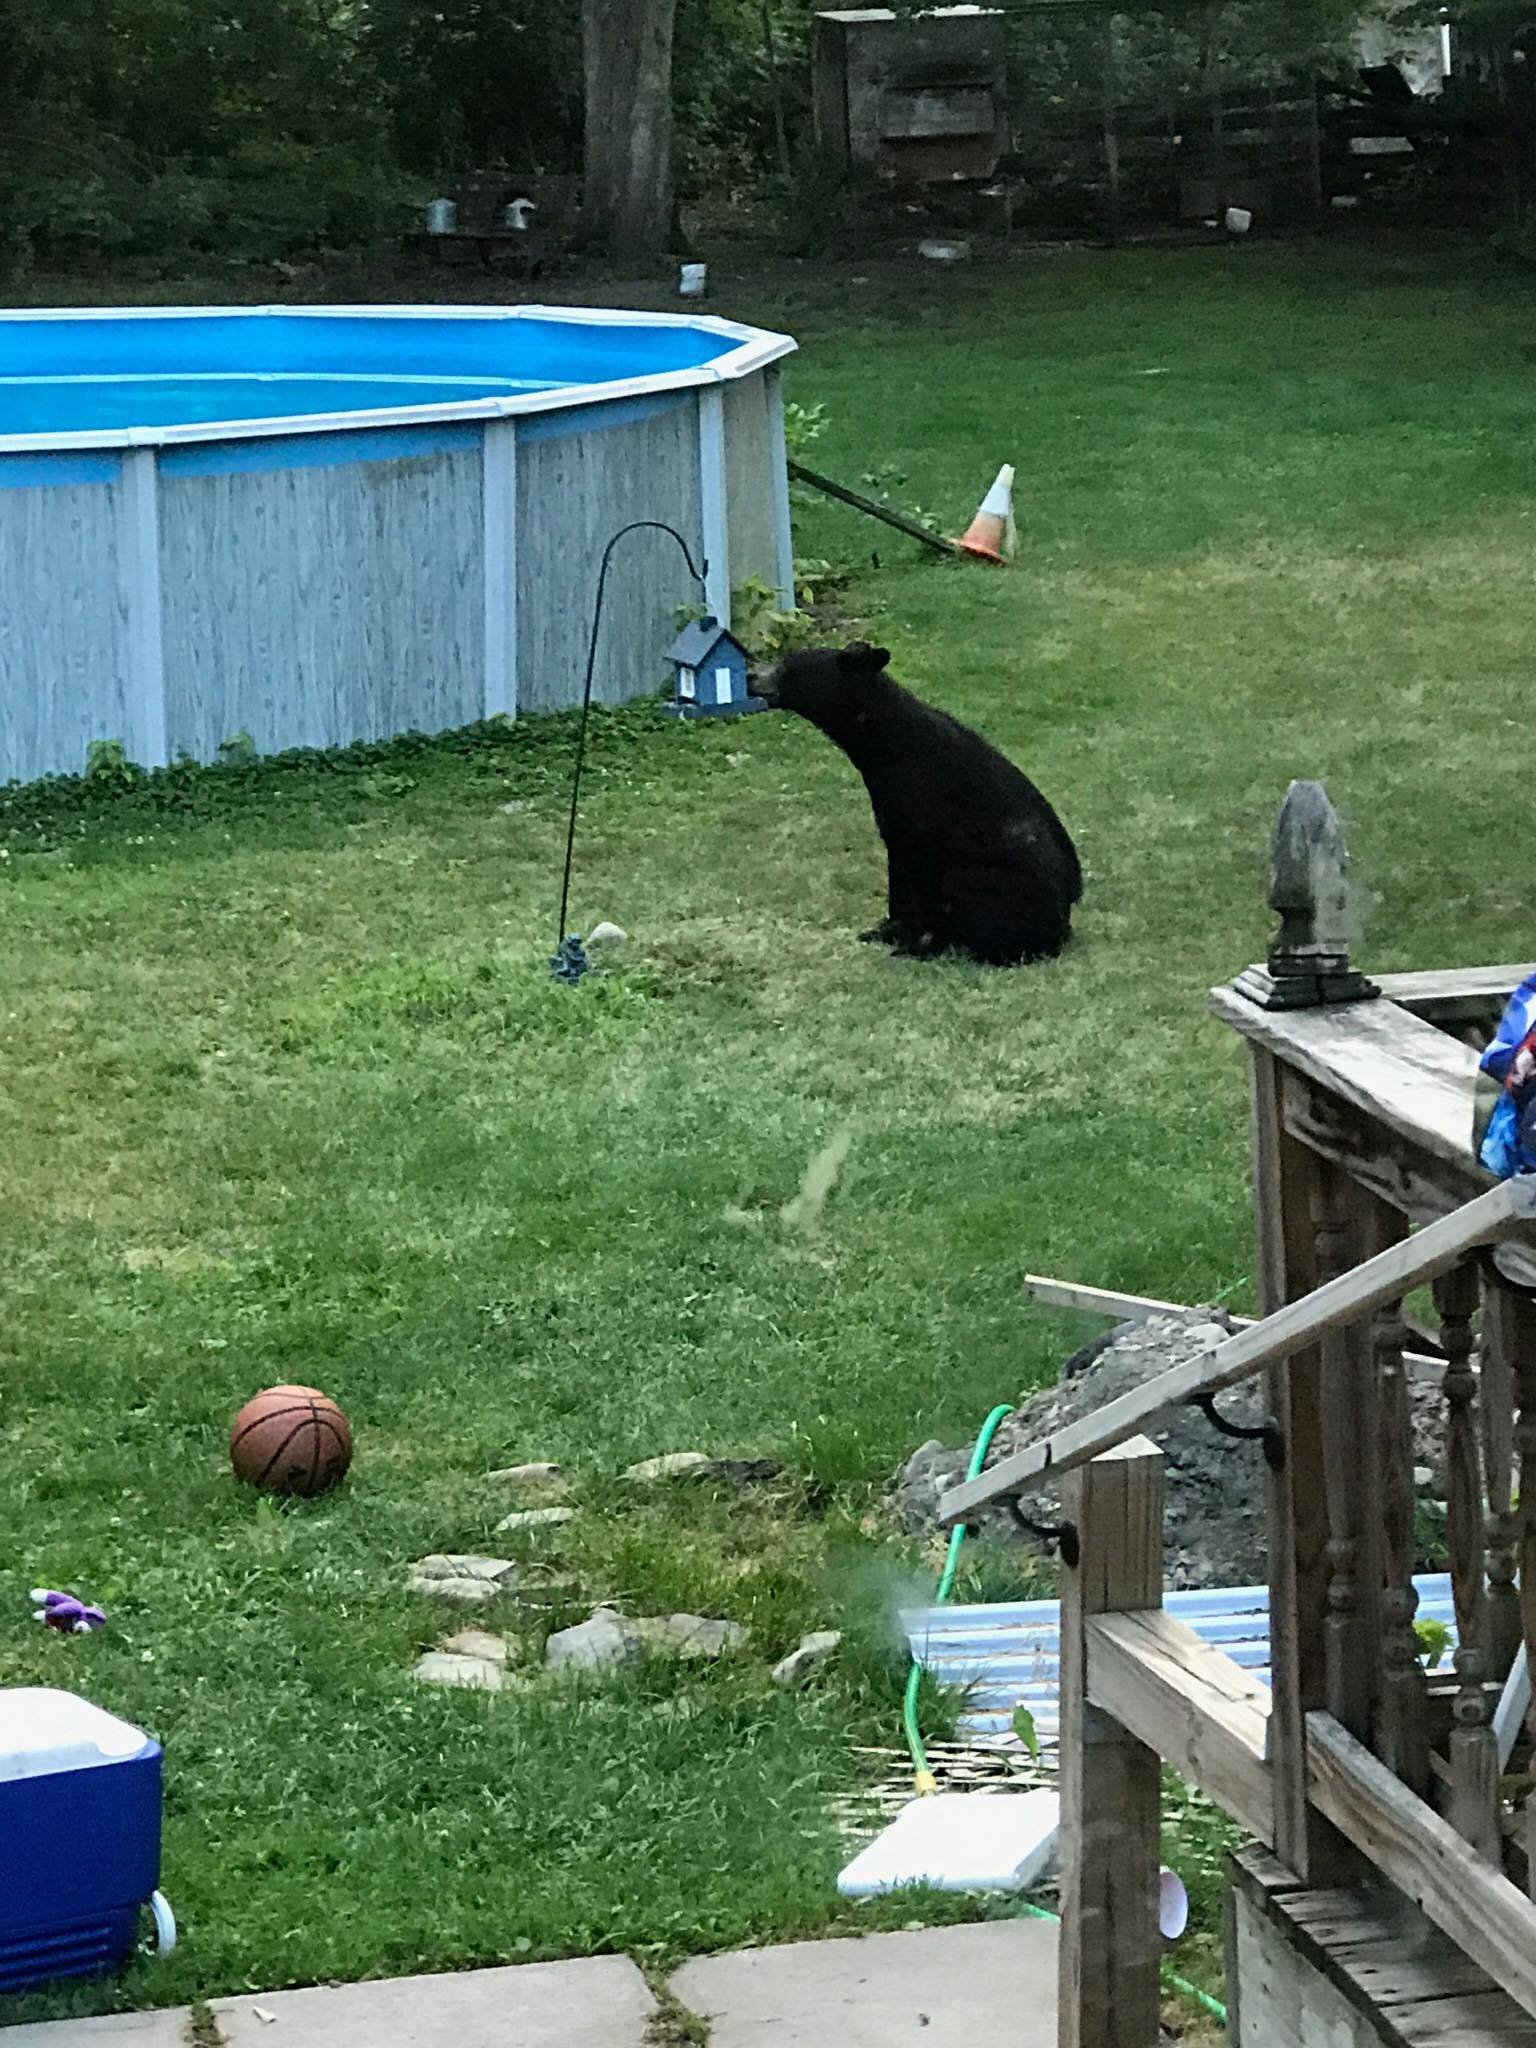 spotted black bear stealing snack in candor wbng com